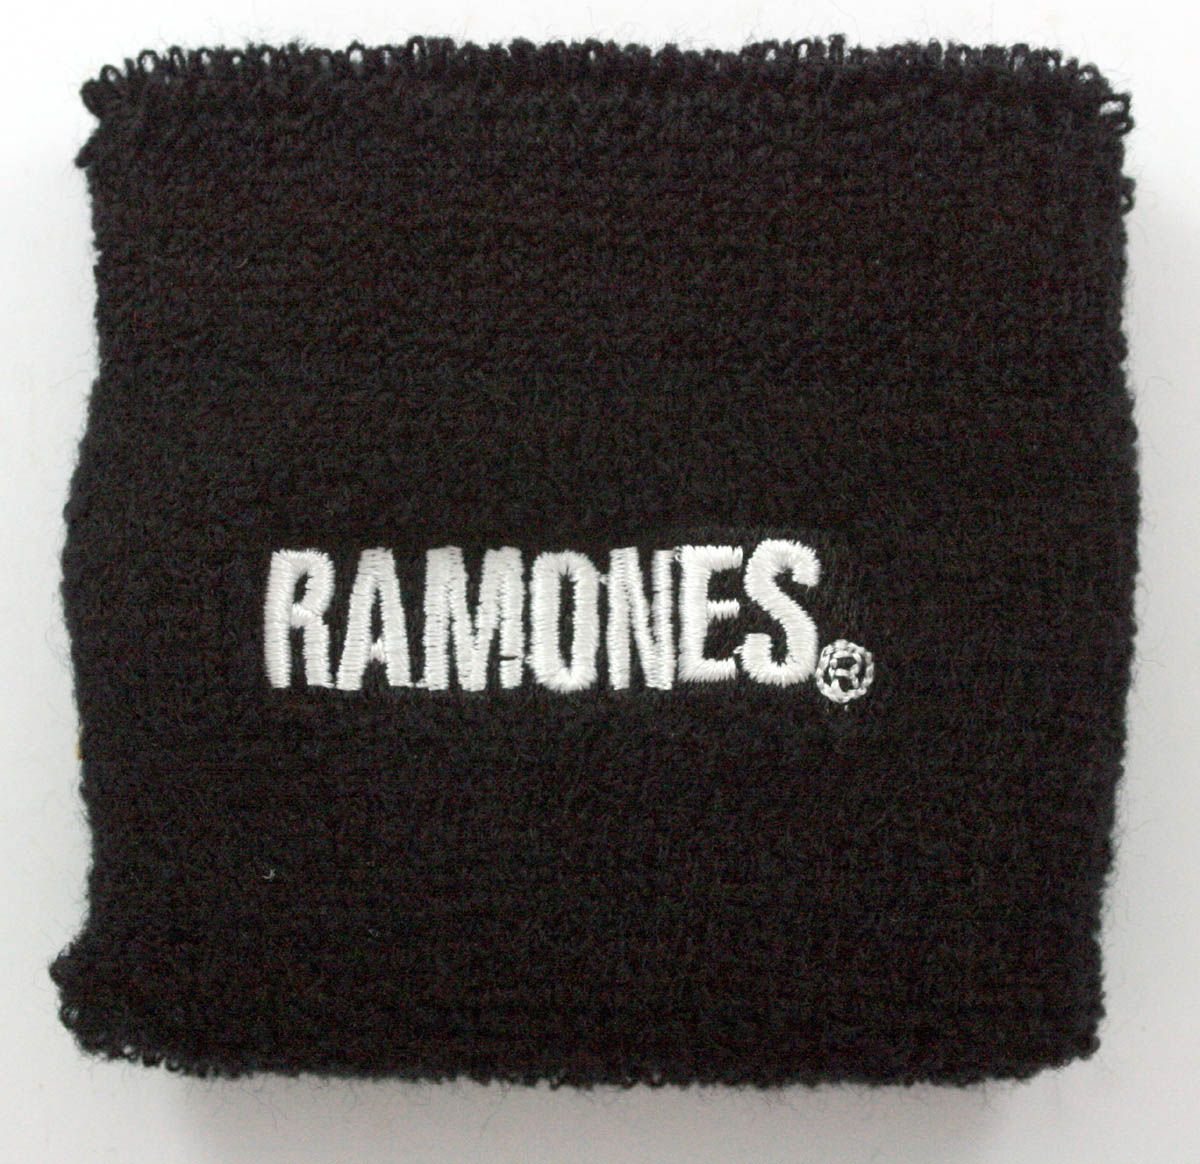 Ramones - Logo Embroidered Sweatband 0874a0c7ac5